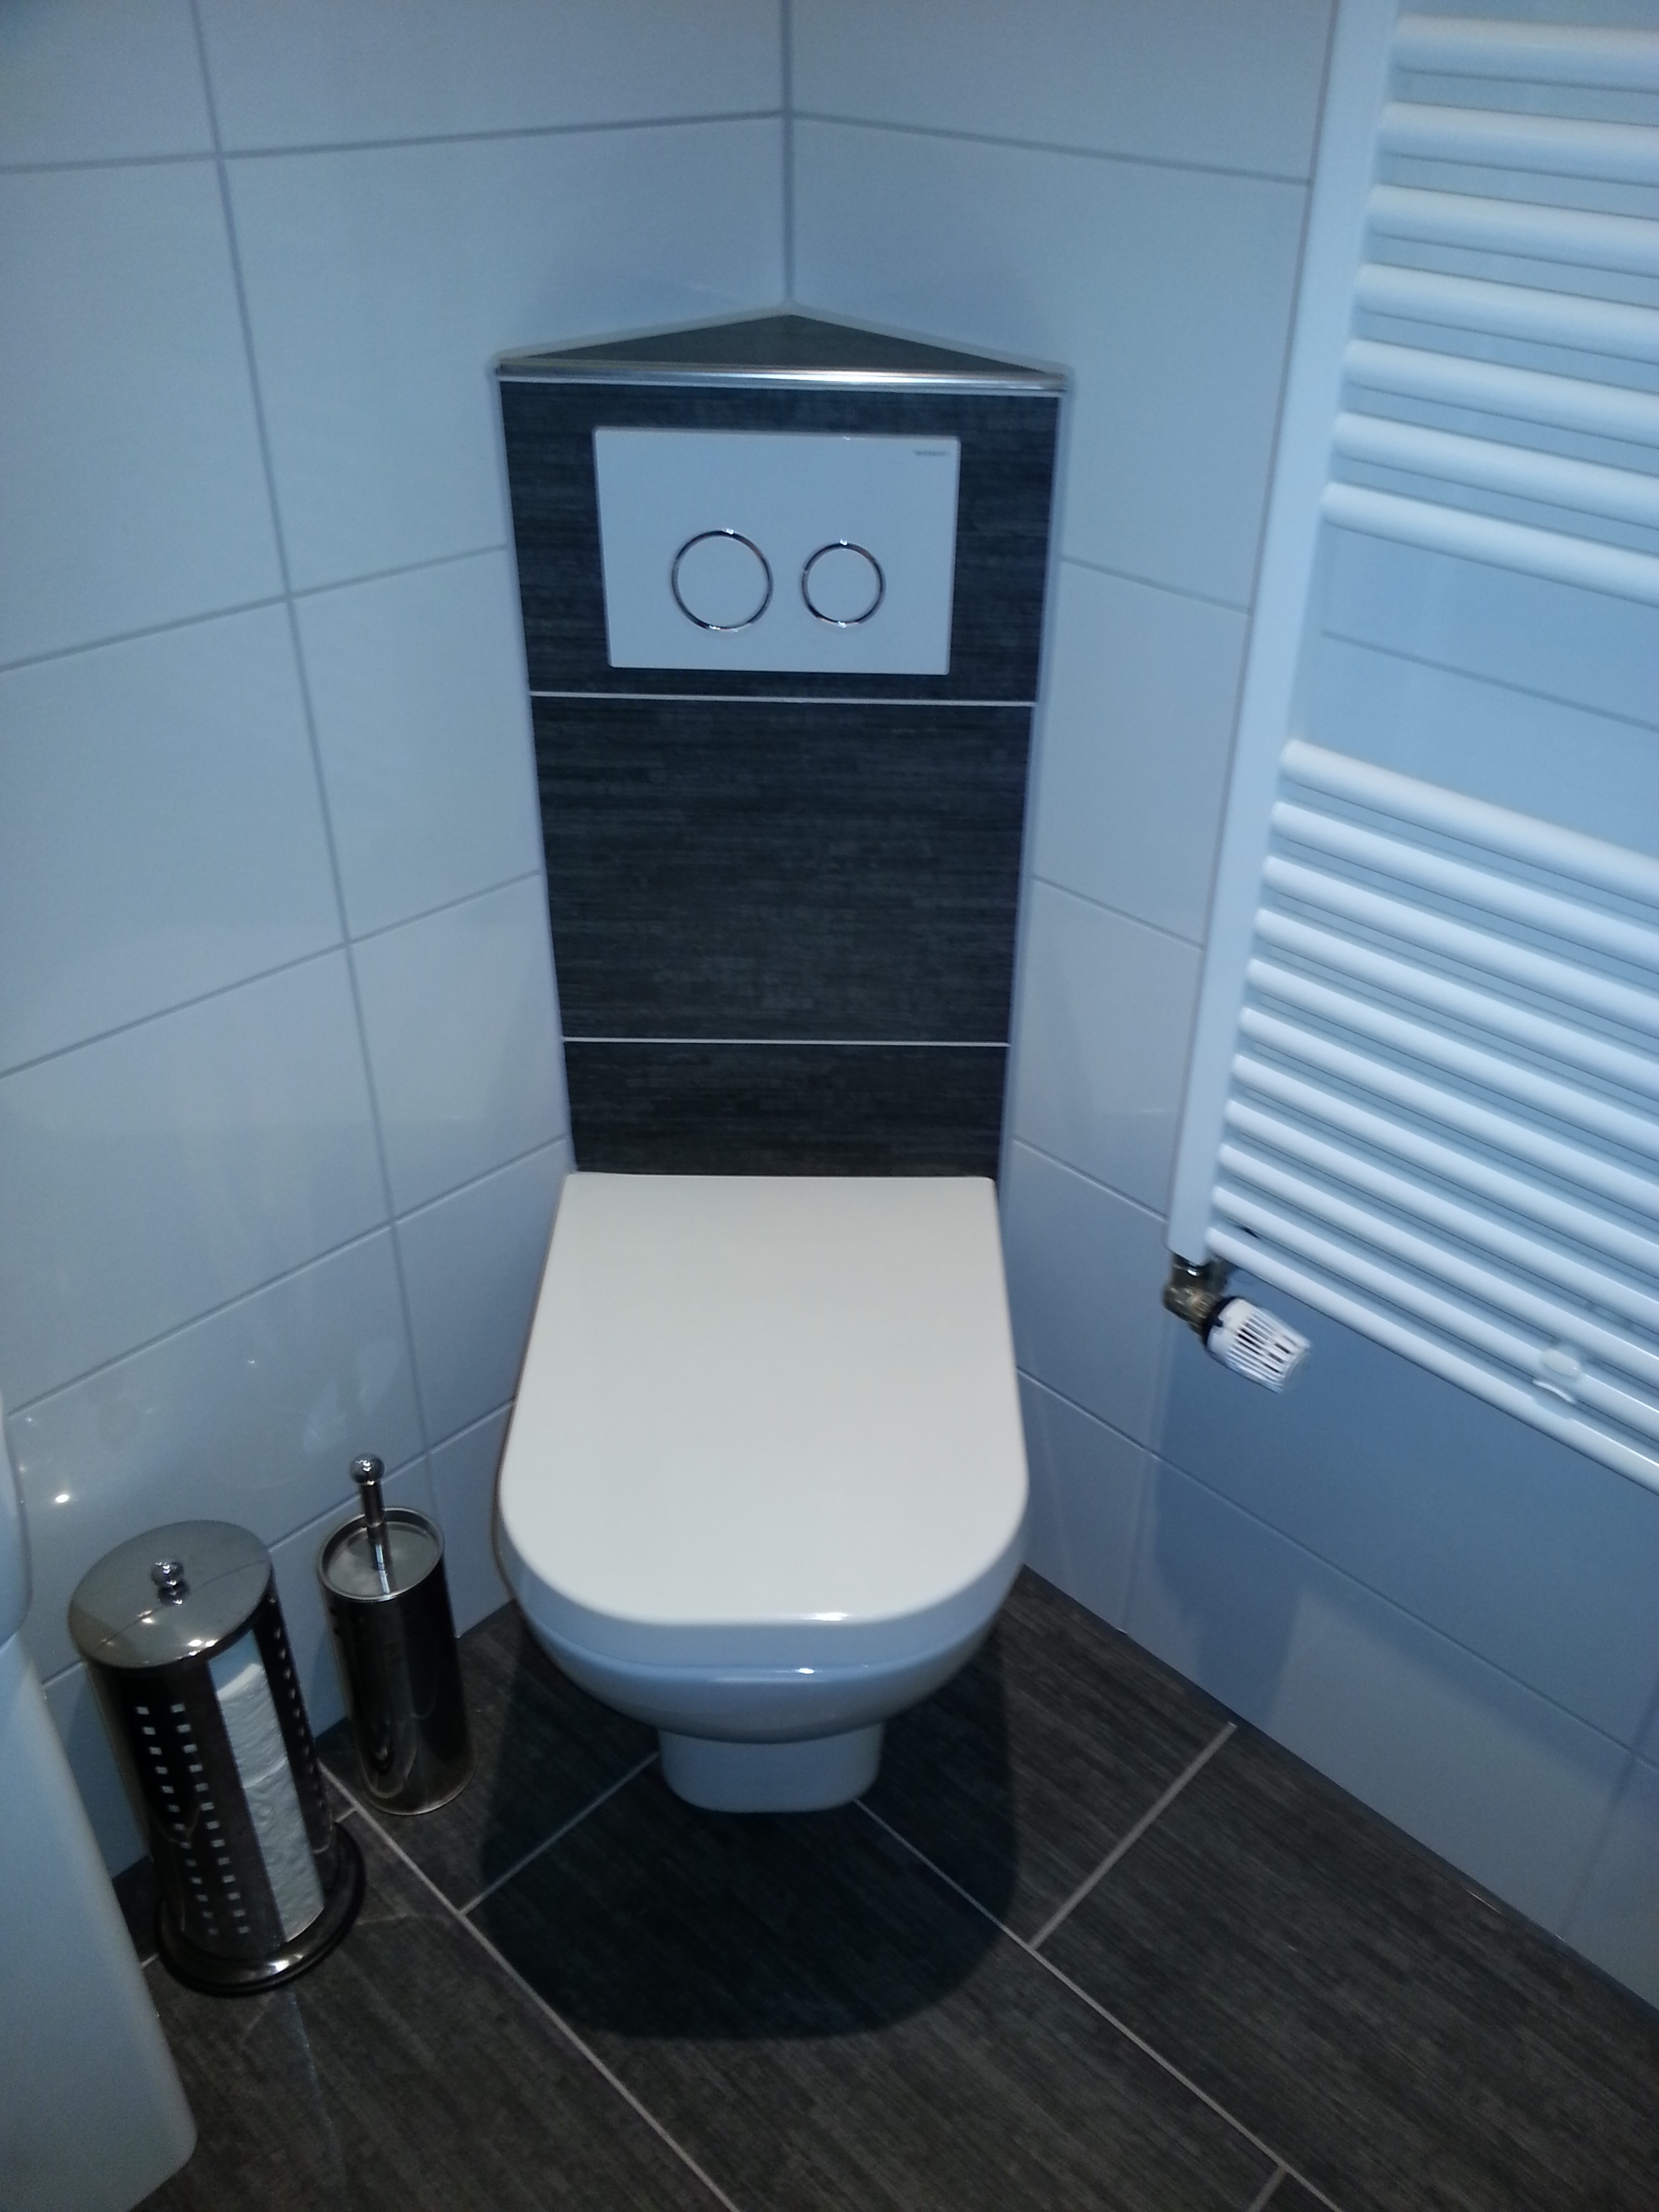 gerd nolte heizung sanit r g ste wc mit dusche. Black Bedroom Furniture Sets. Home Design Ideas